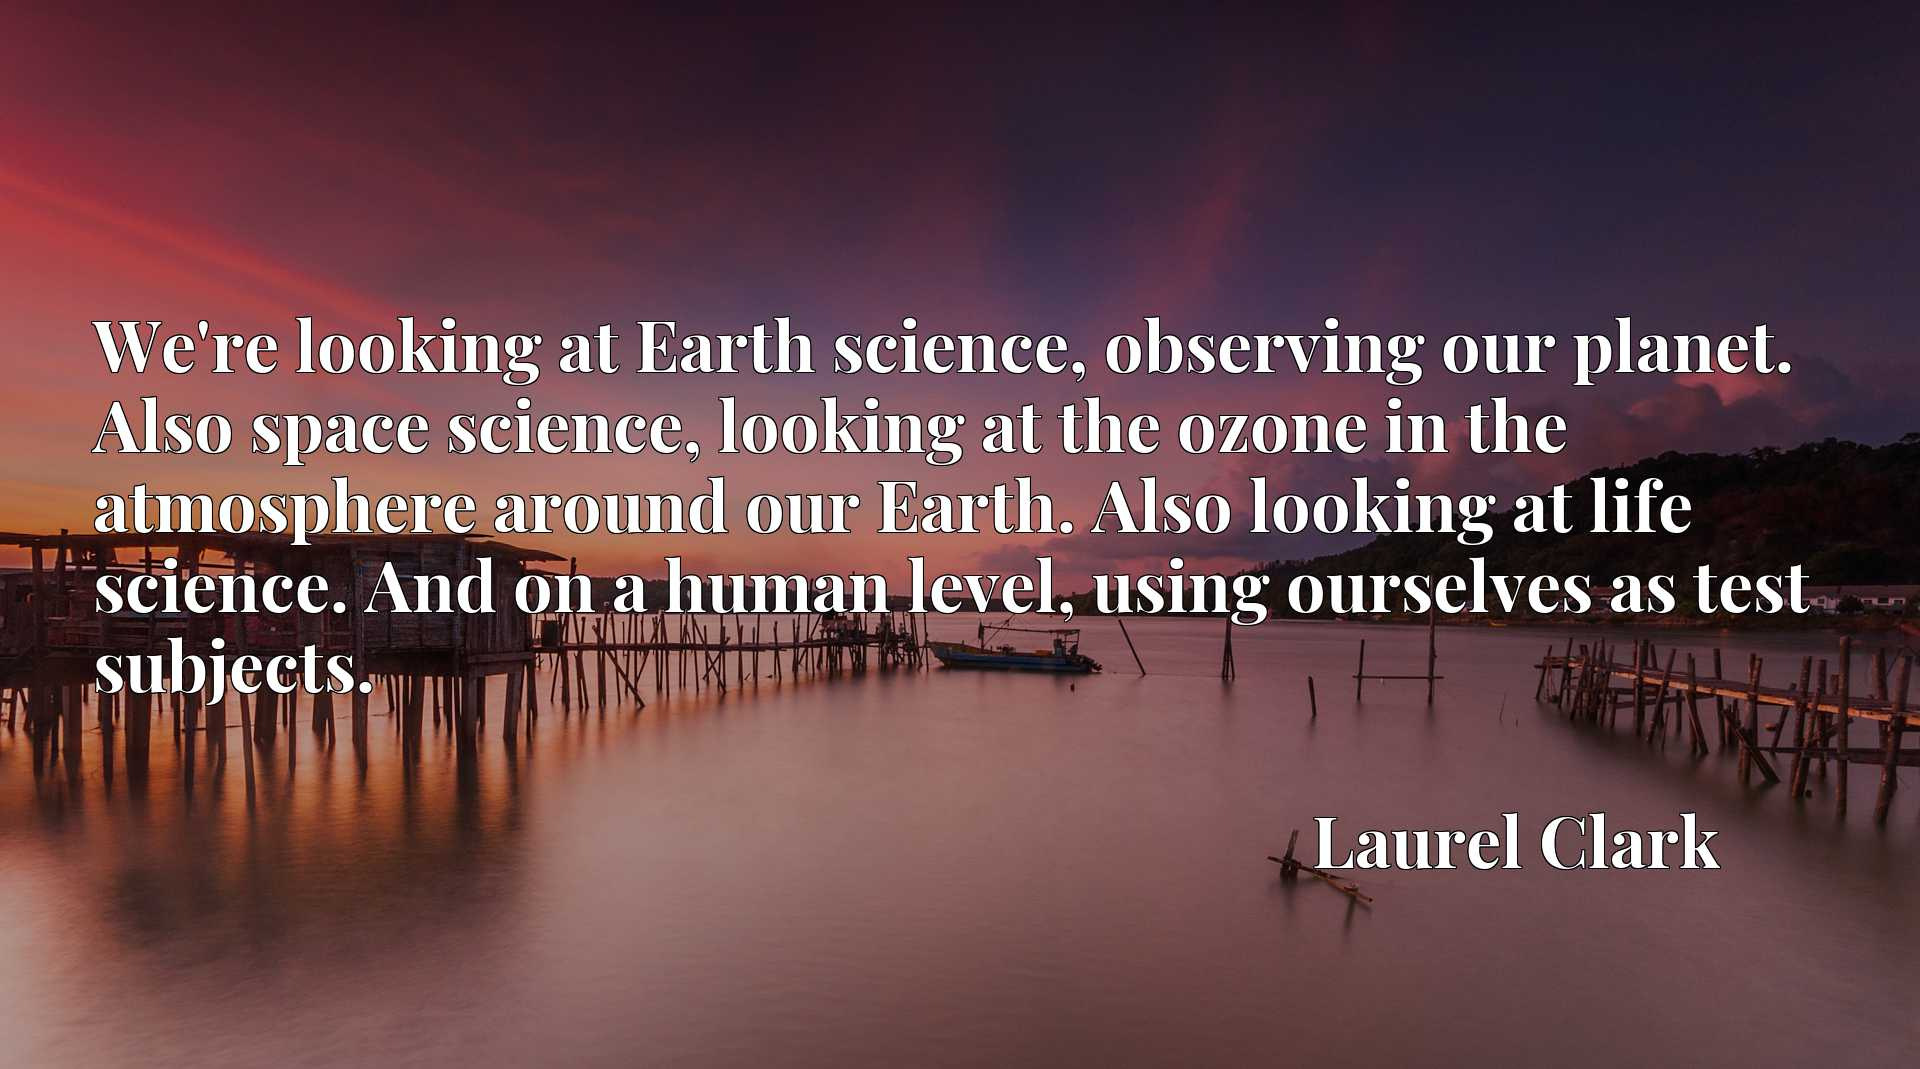 We're looking at Earth science, observing our planet. Also space science, looking at the ozone in the atmosphere around our Earth. Also looking at life science. And on a human level, using ourselves as test subjects.